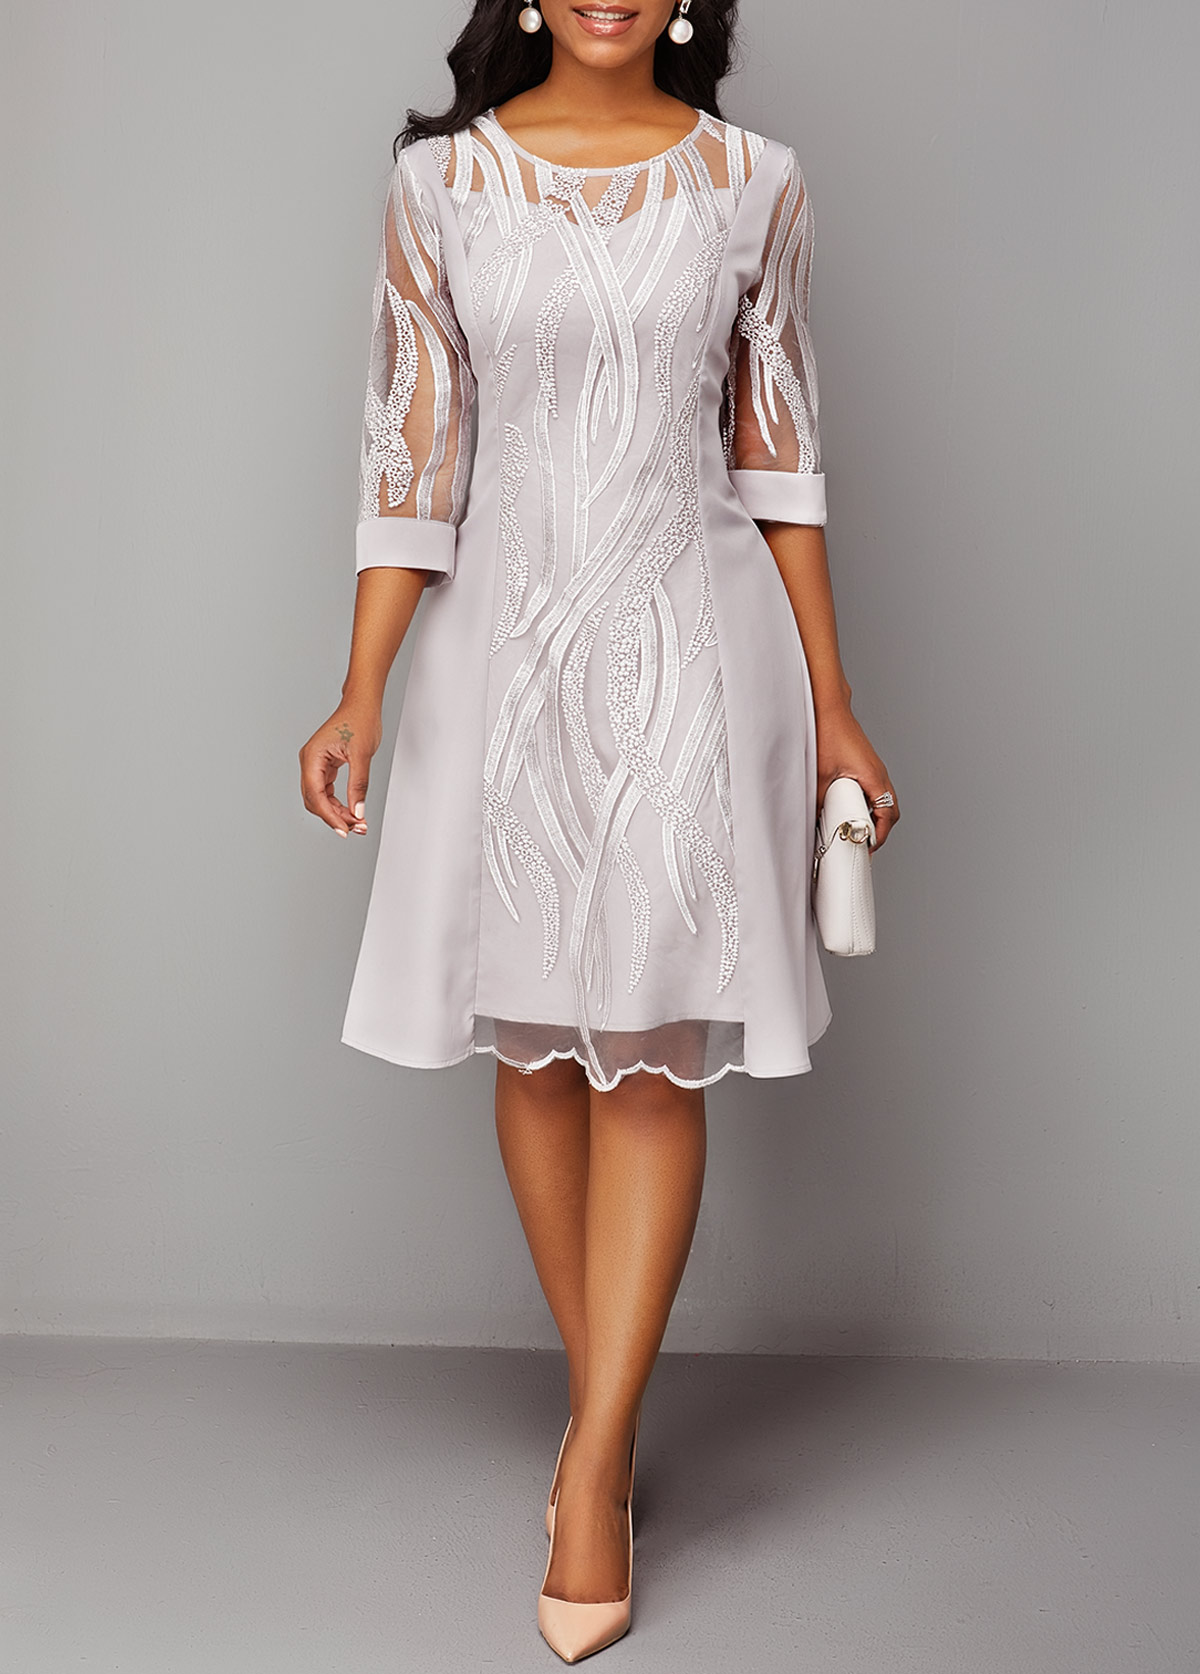 Round Neck Back Zipper Three Quarter Sleeve Lace Dress